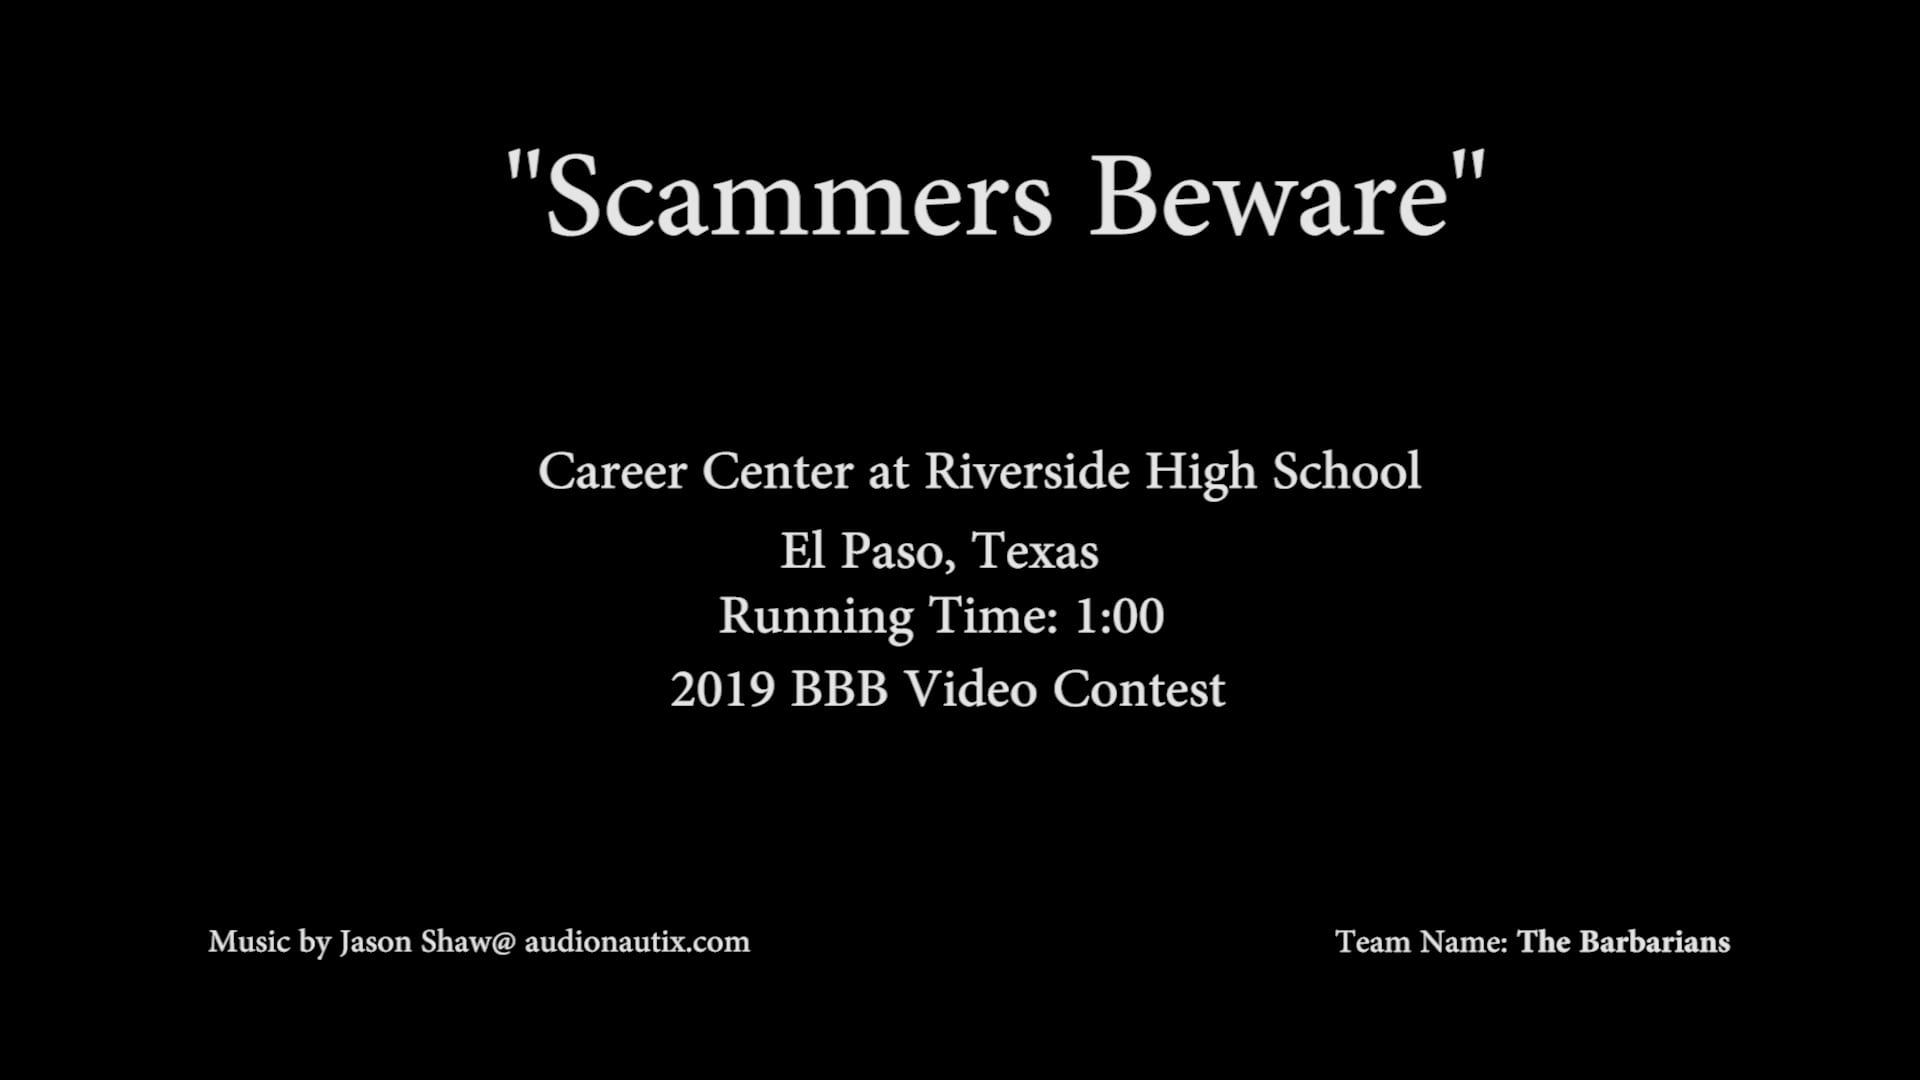 Scammers Beware